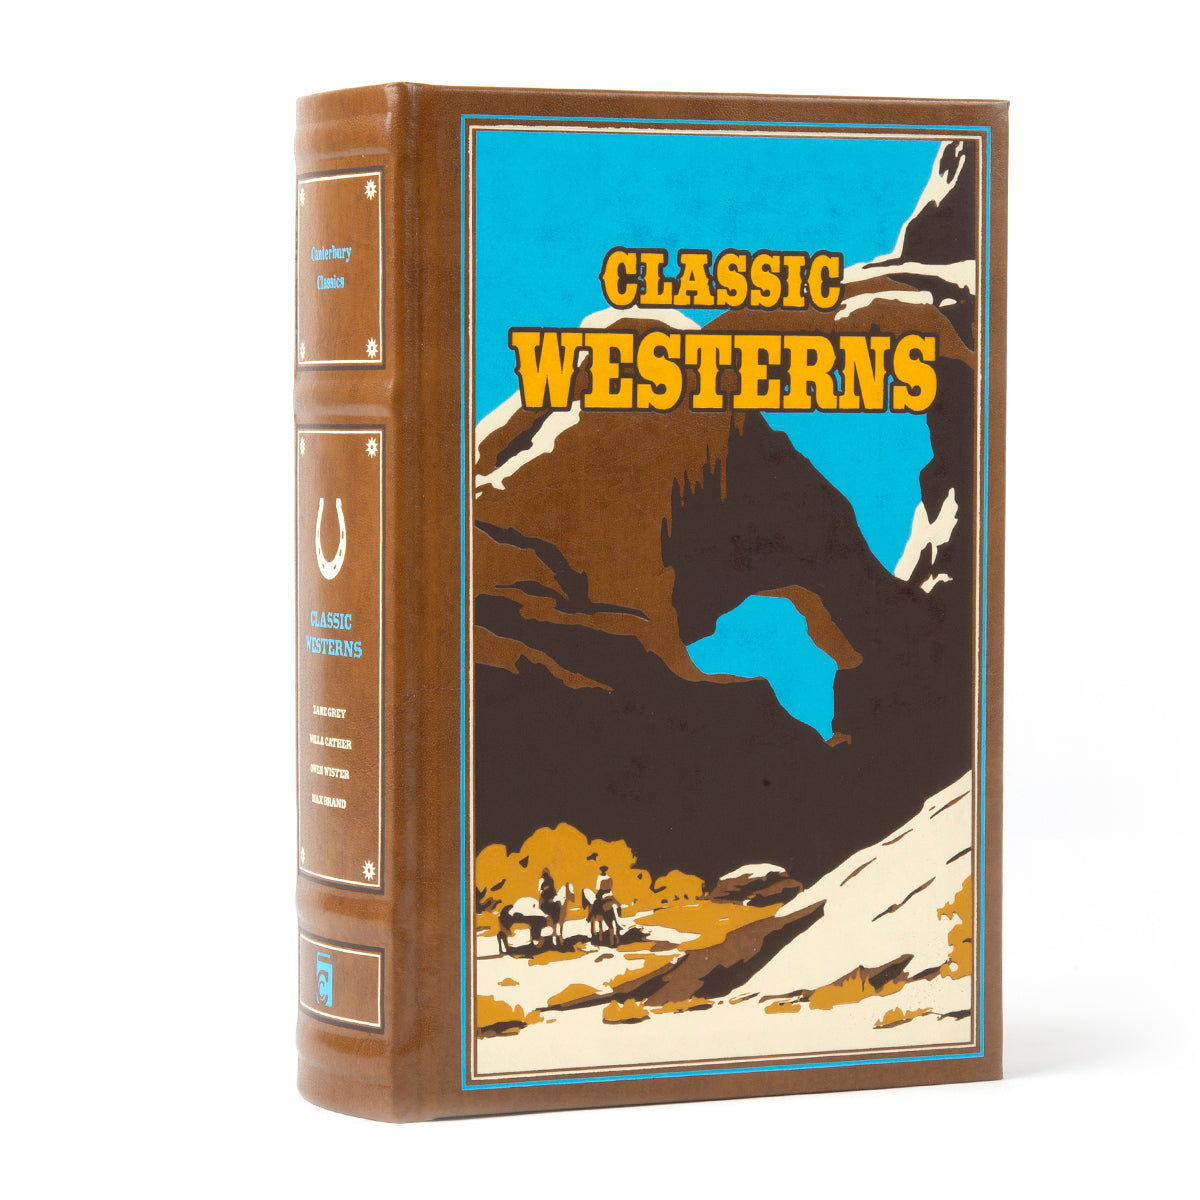 Classic Westerns by Canterbury Classics